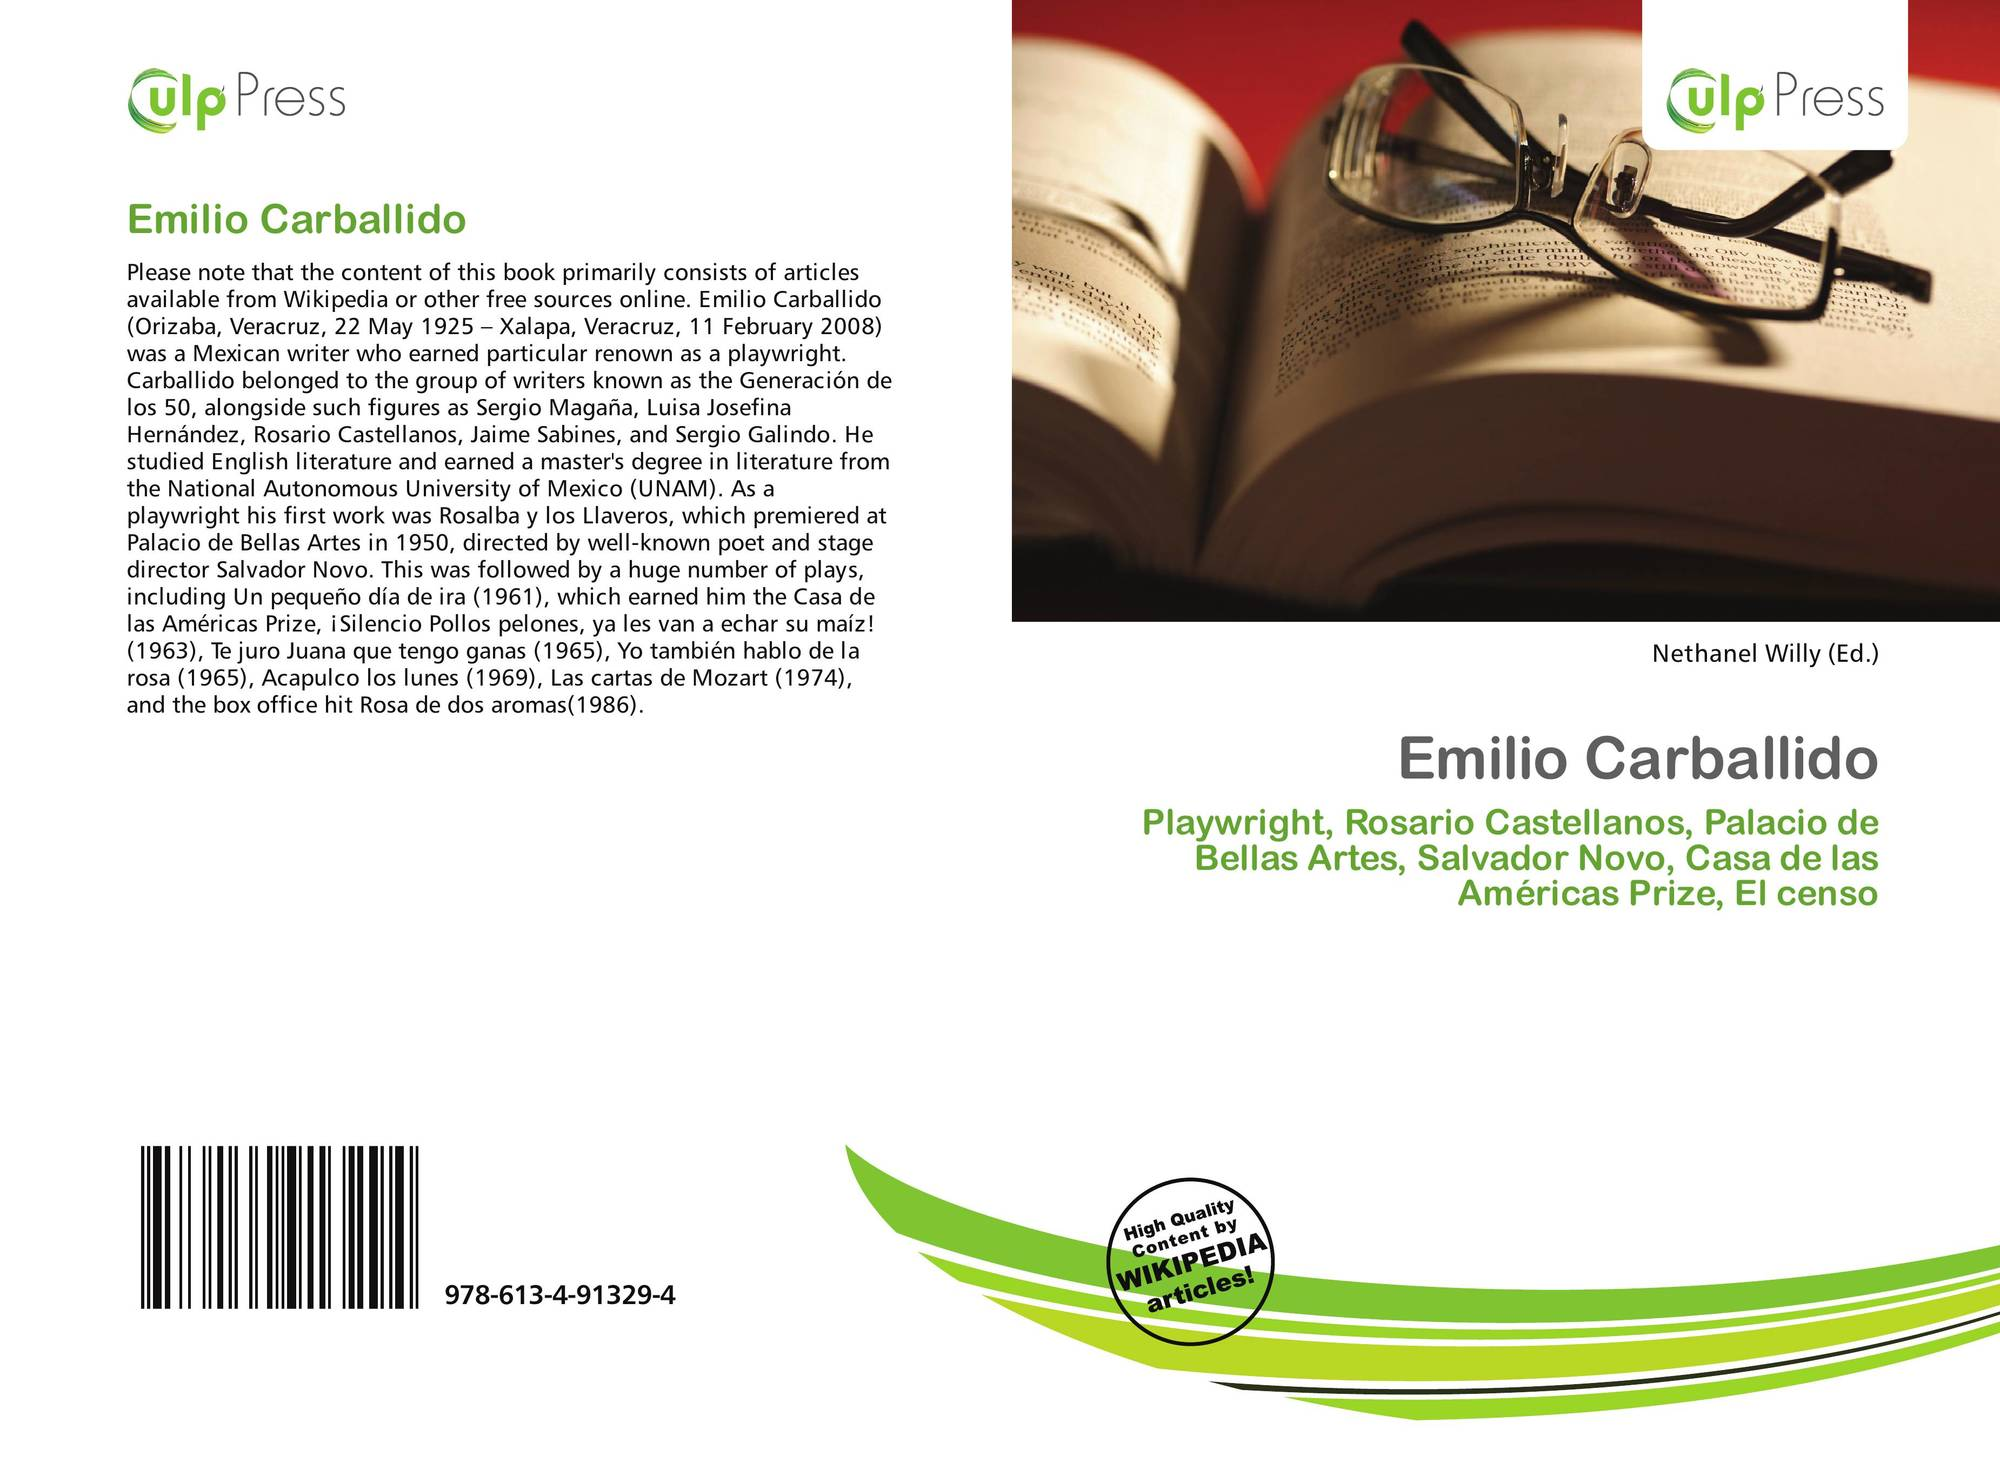 essay about emilio carballido Cultural anthropology interview essay paper research paper on internet addiction designer internet discursive essay korean and vietnamese language similarities essay katatagan ng kalooban essay about myself essayez horse racing une dissertation philosophie emerson essays second series dates 2017 cause and effect essay on migration causes of.